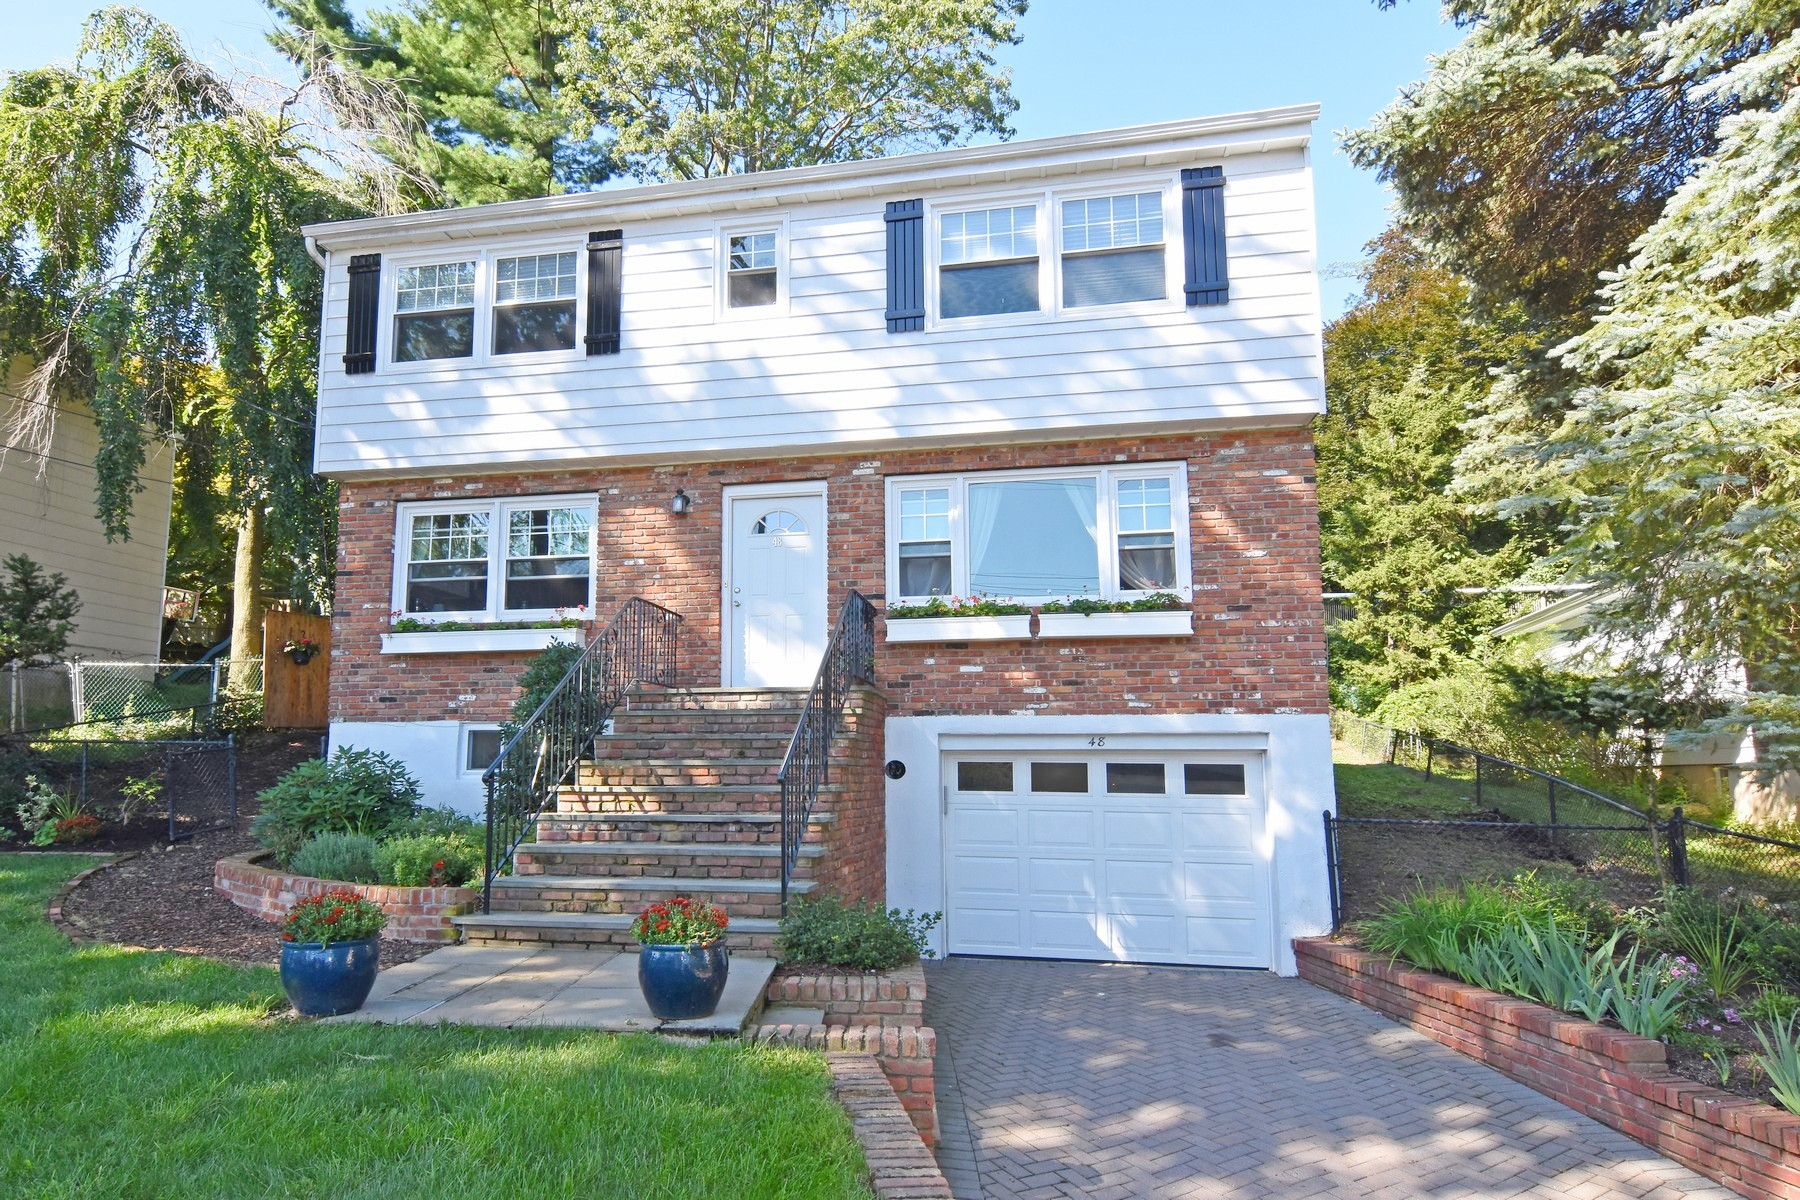 Single Family Homes for Sale at Charming Newly Renovated Colonial 48 Ogden Place Dobbs Ferry, New York 10522 United States